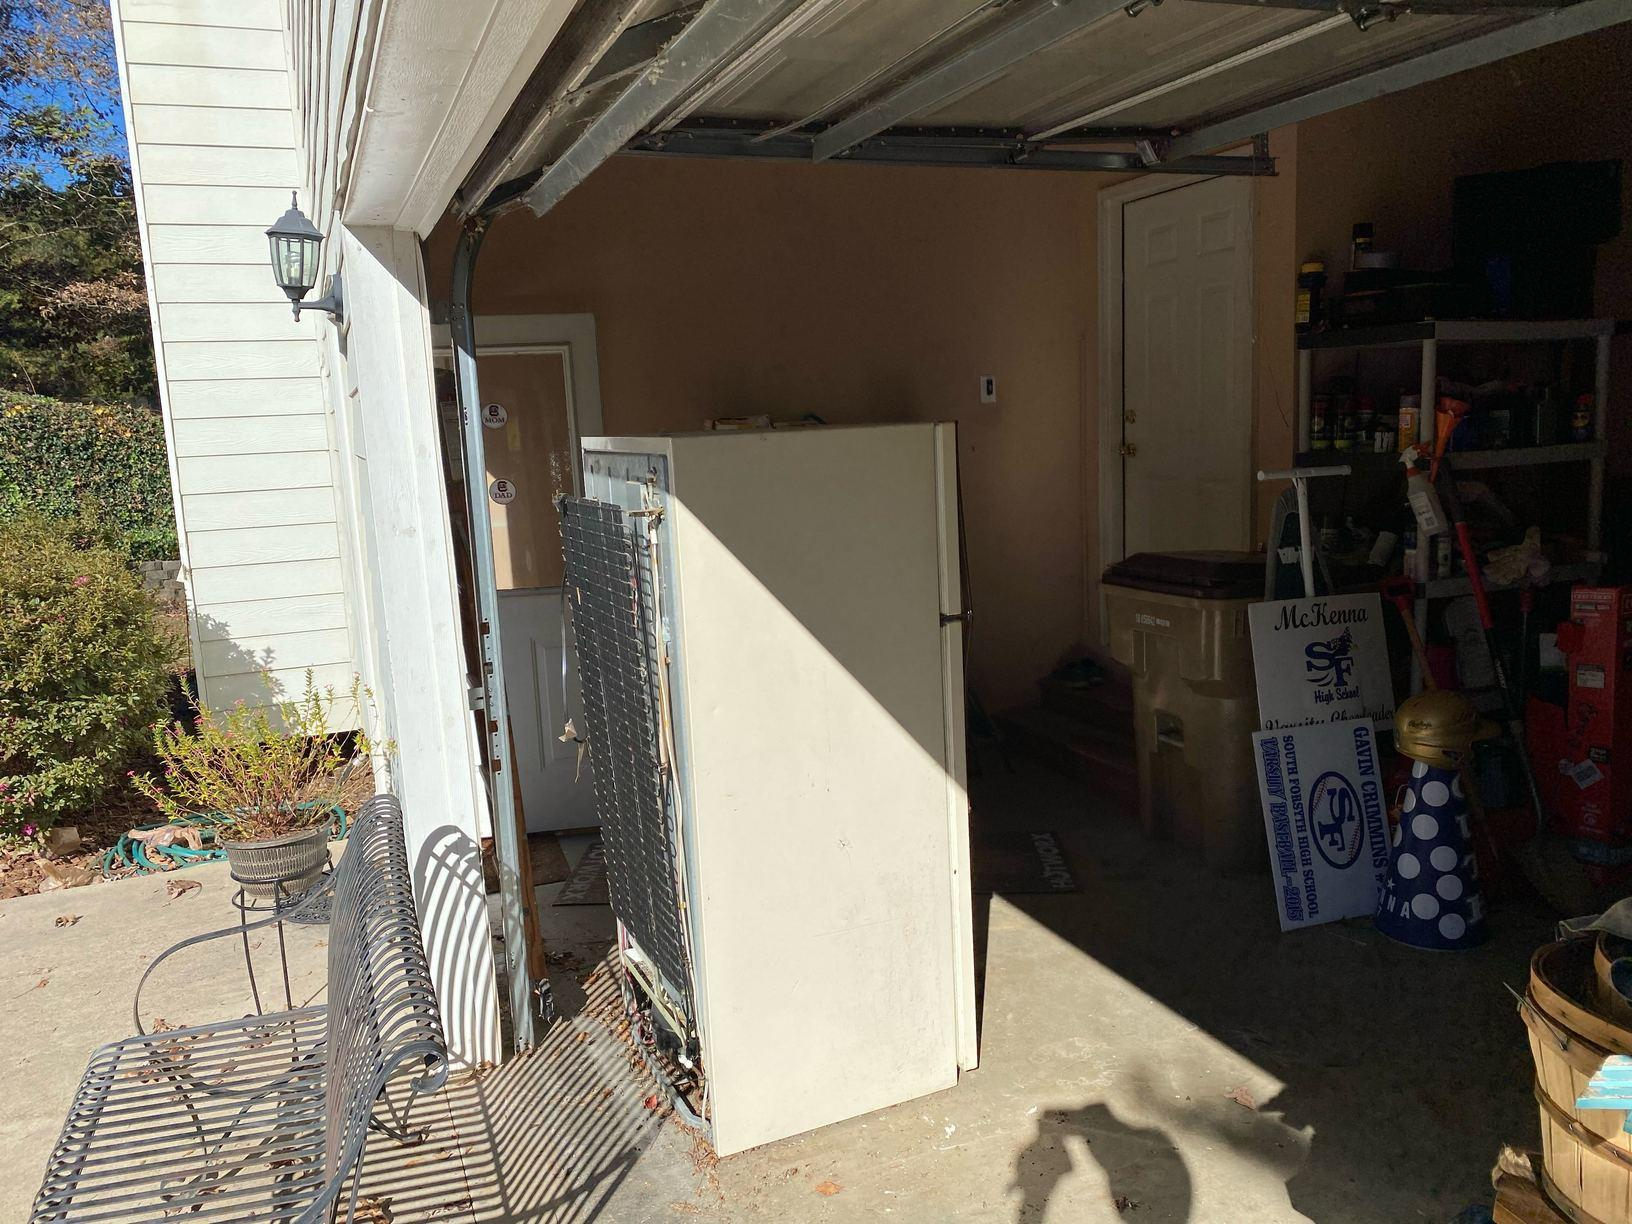 Refrigerator removal in Cumming, Georgia. - Before Photo